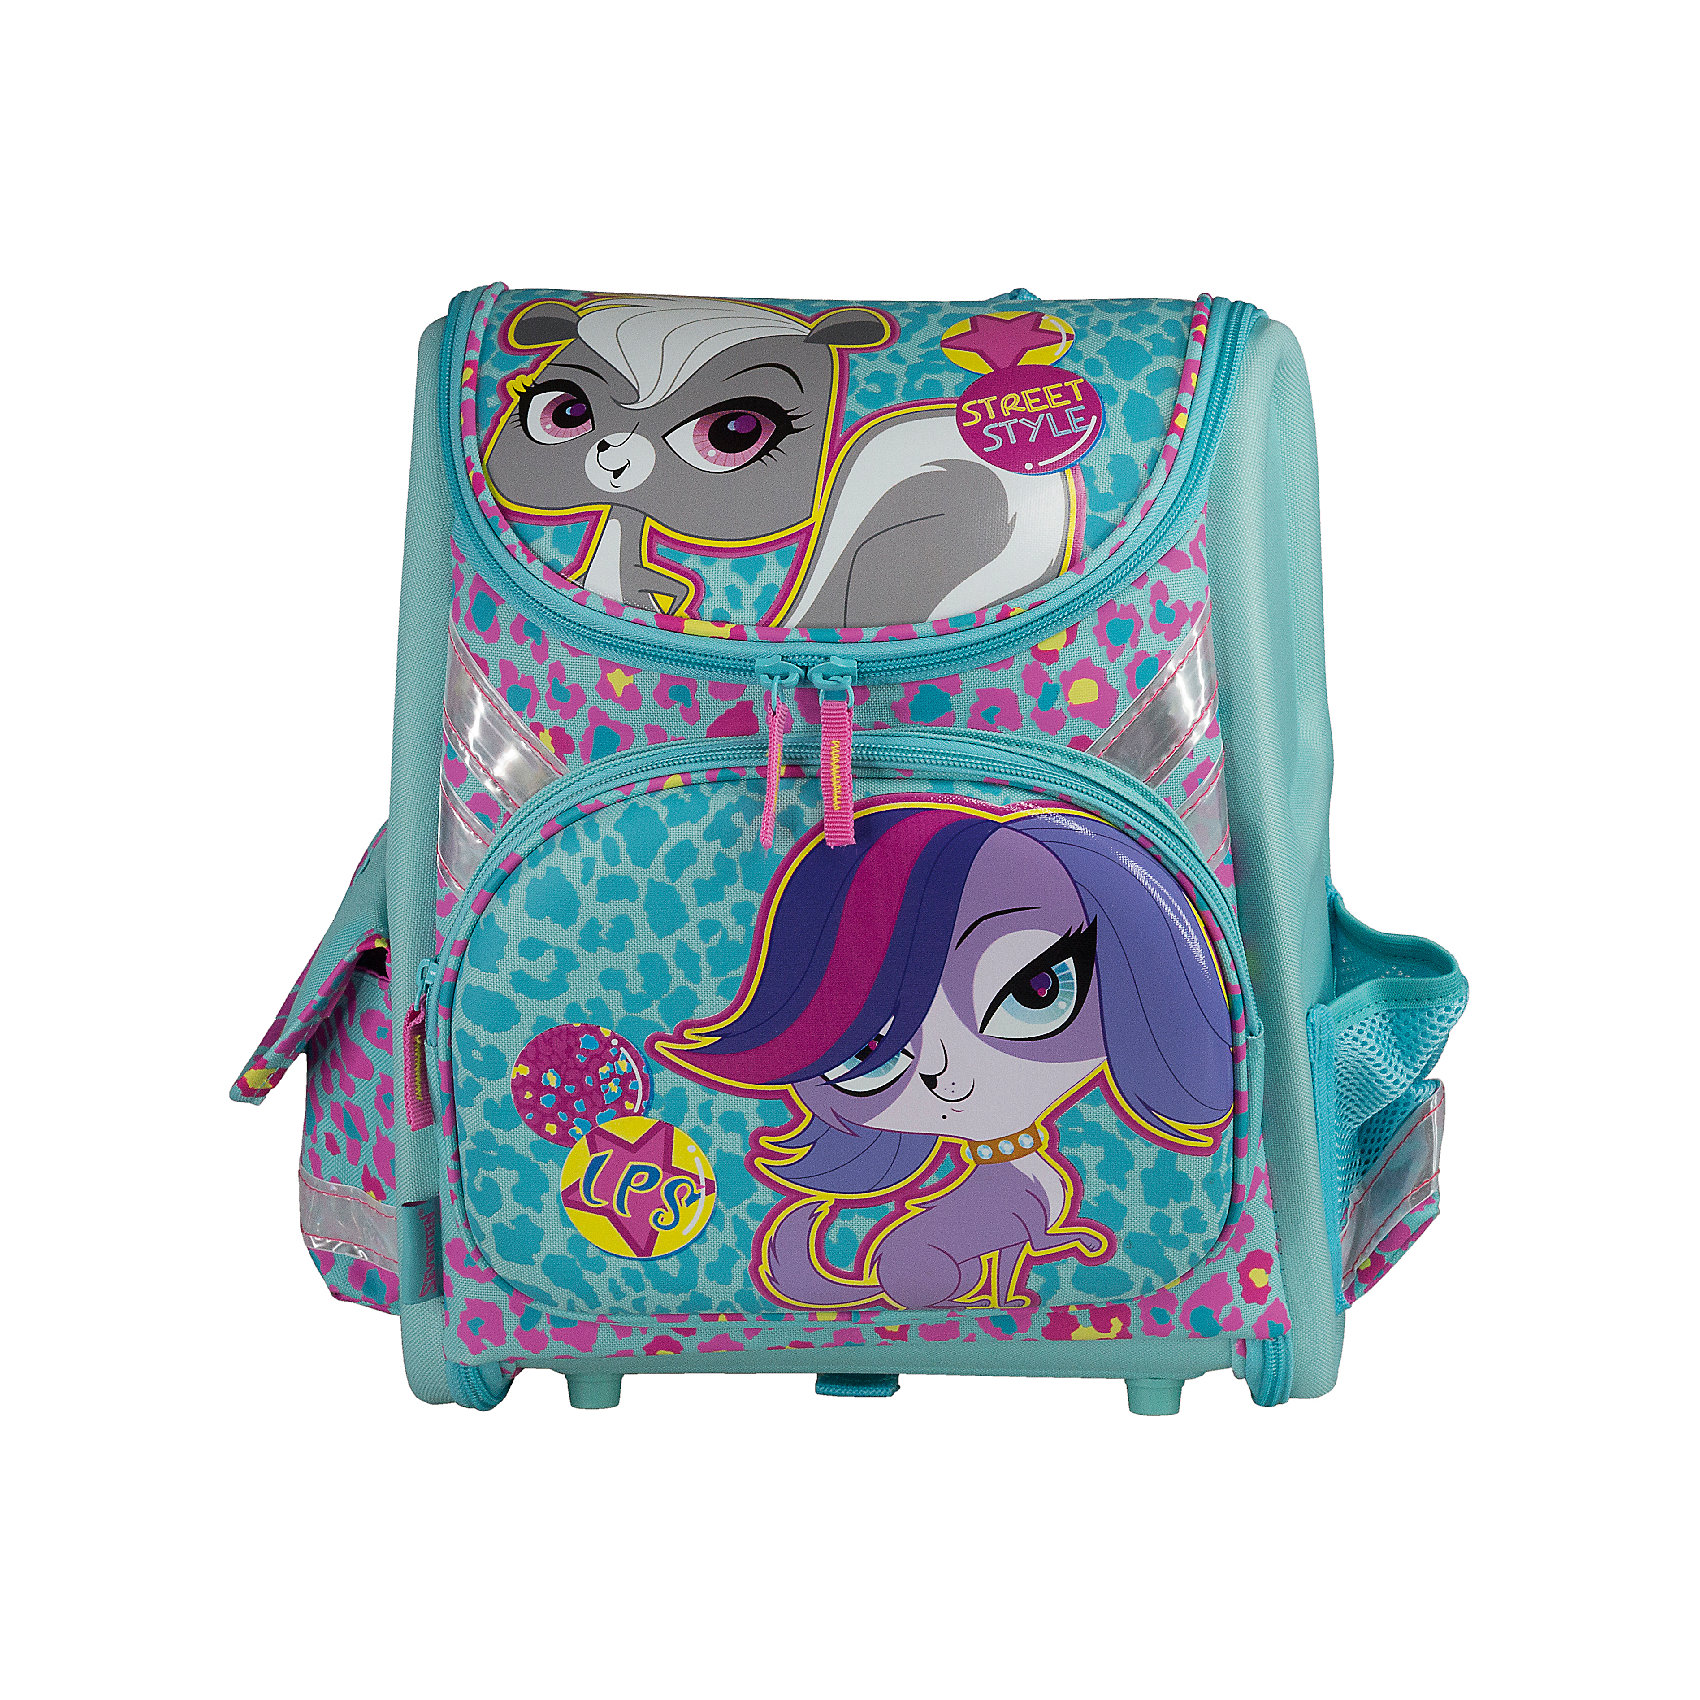 Академия групп Школьный ранец с EVA-спинкой, Littlest Pet Shop школьный ранец kinderline international littlest pet shop lpbb ut1 836